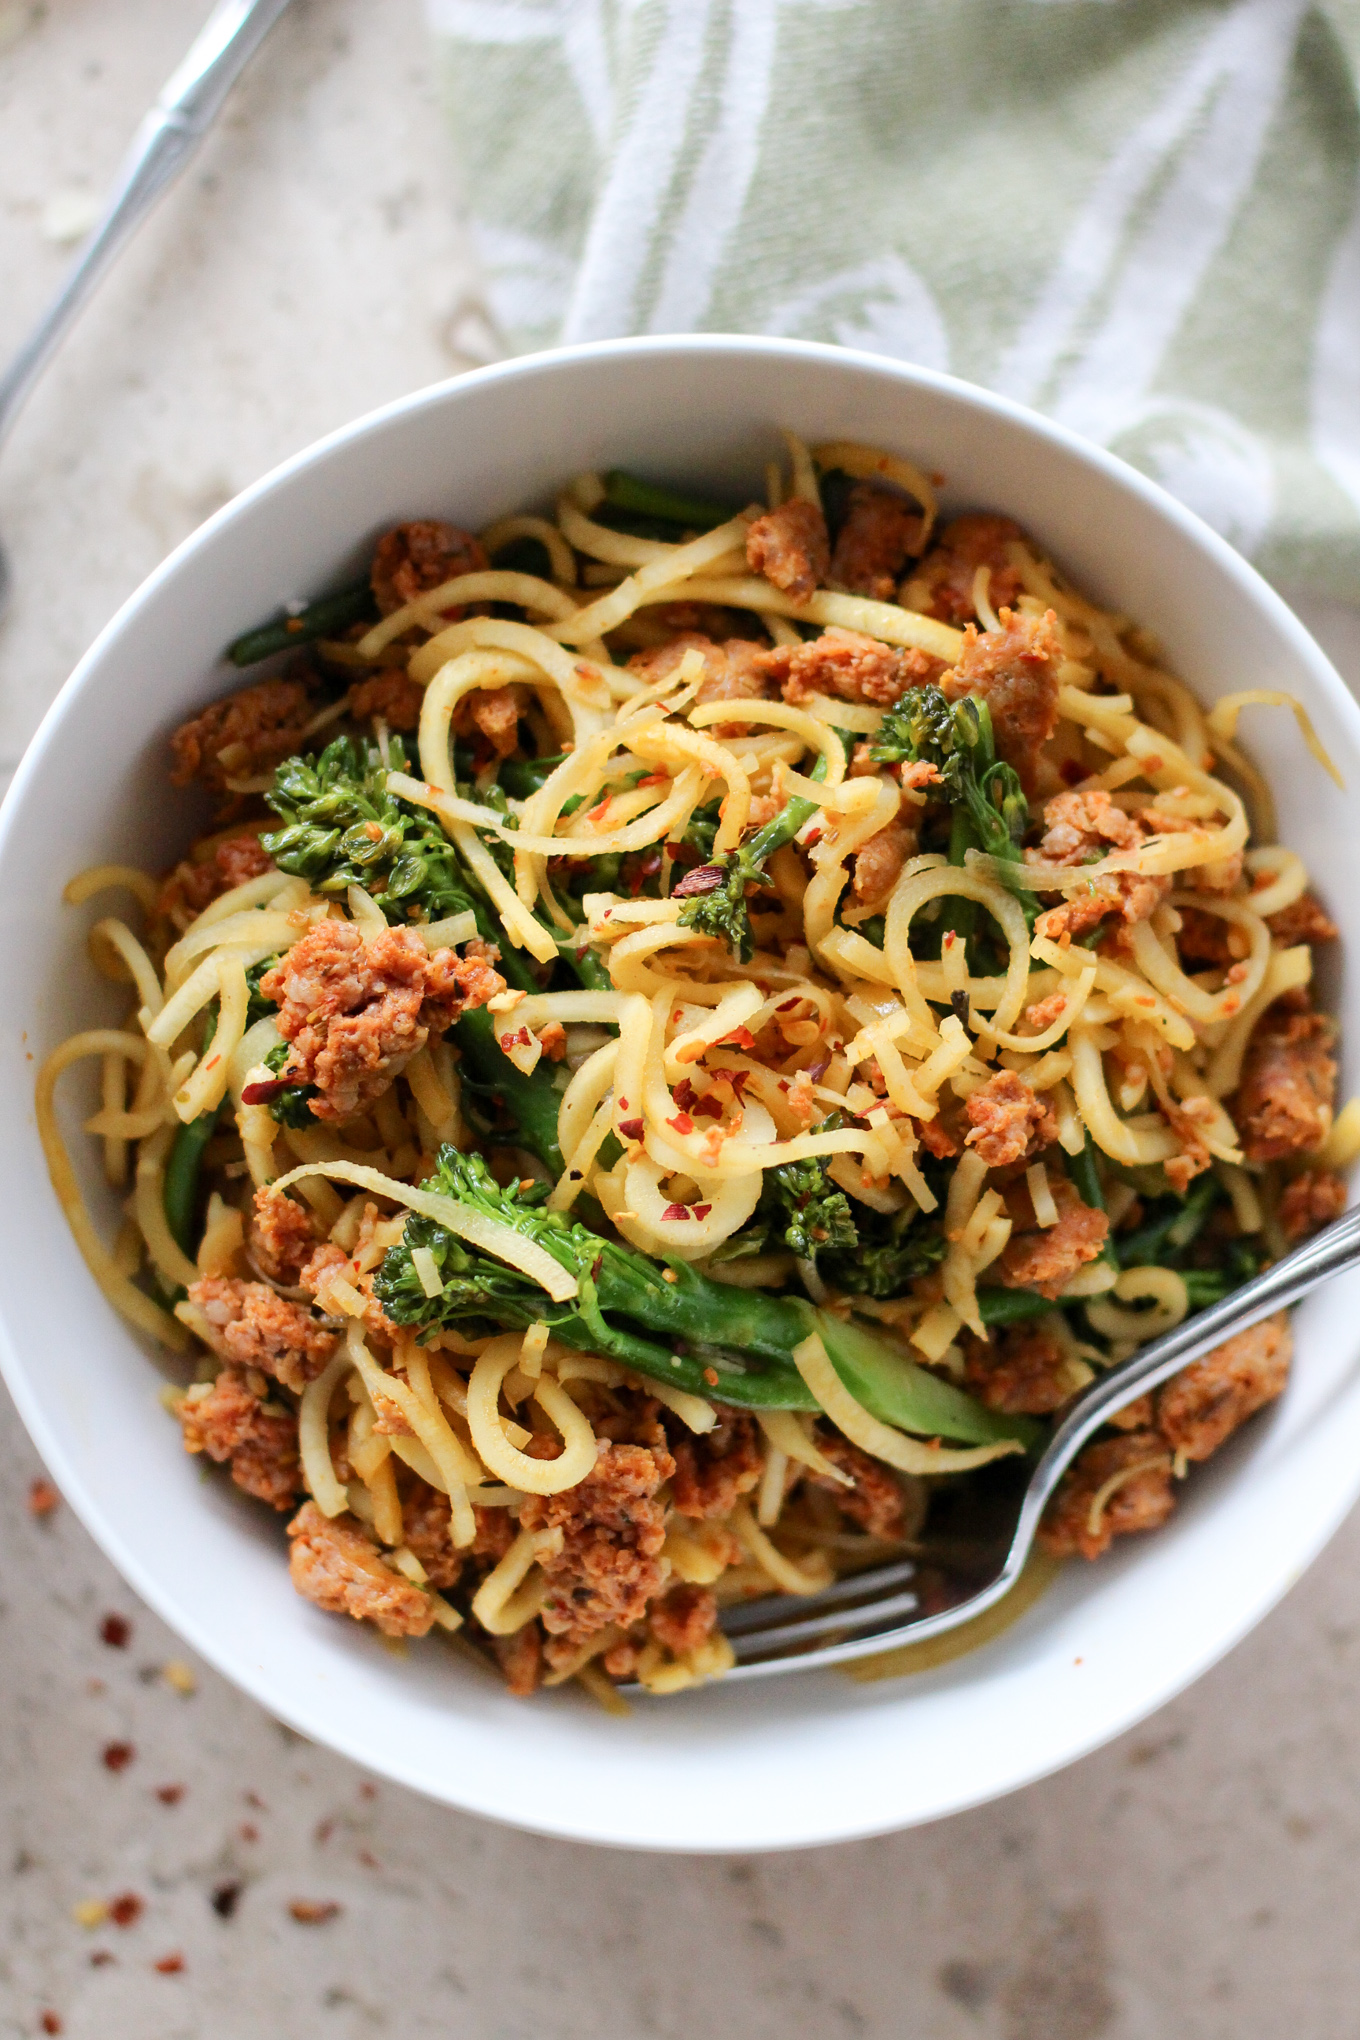 Spiralized Parsnips with Broccolini and Sausage